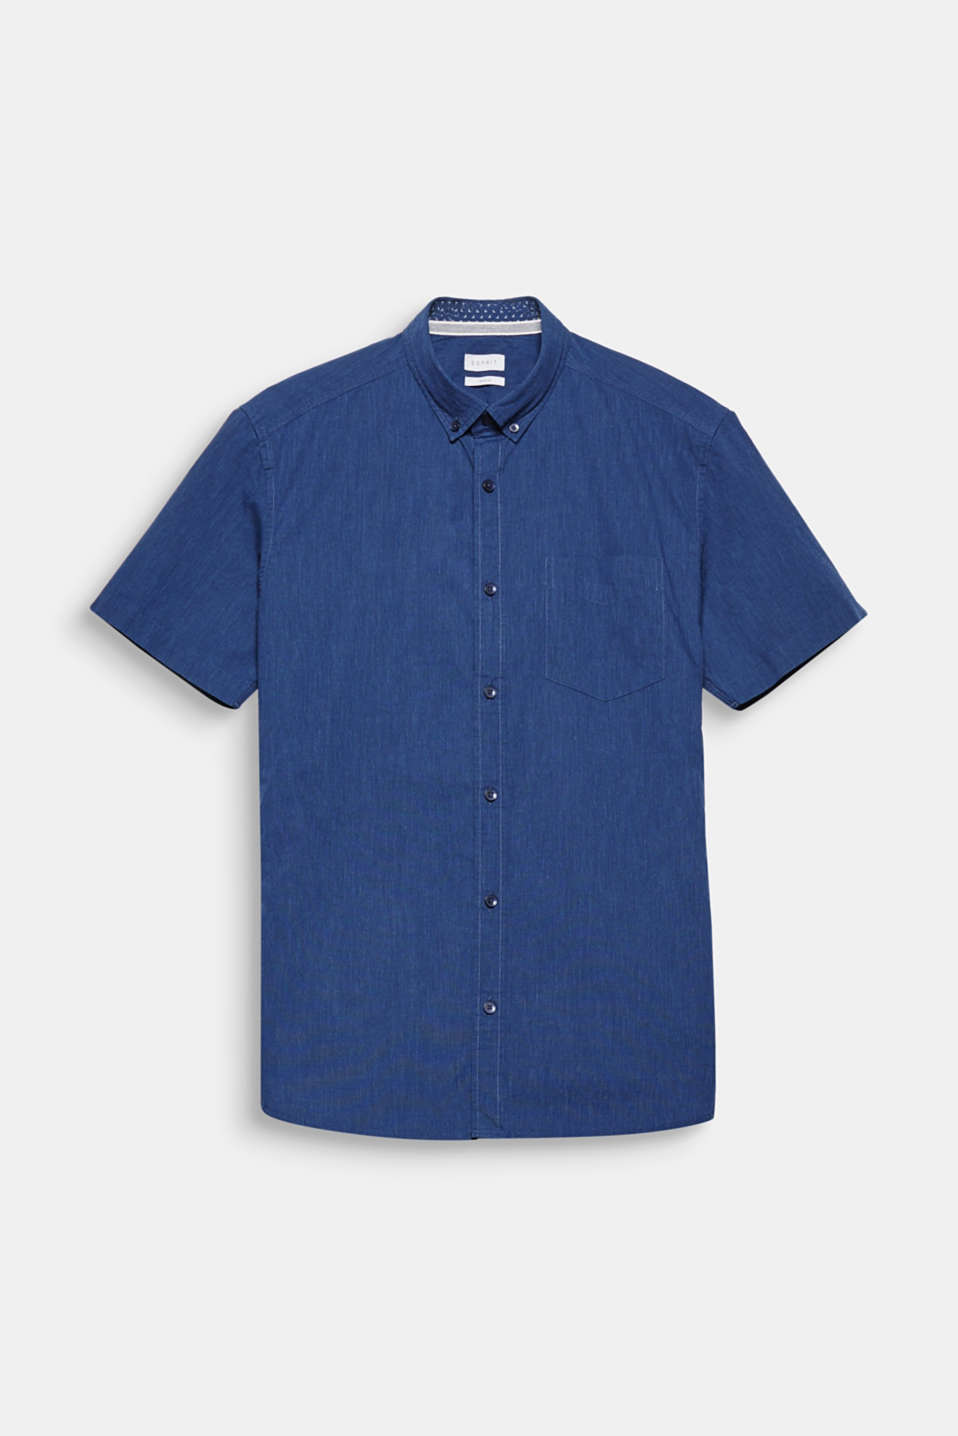 The button-down collar adds a fine finishing touch. The lightweight melange chambray gives this short sleeve shirt a sporty look.